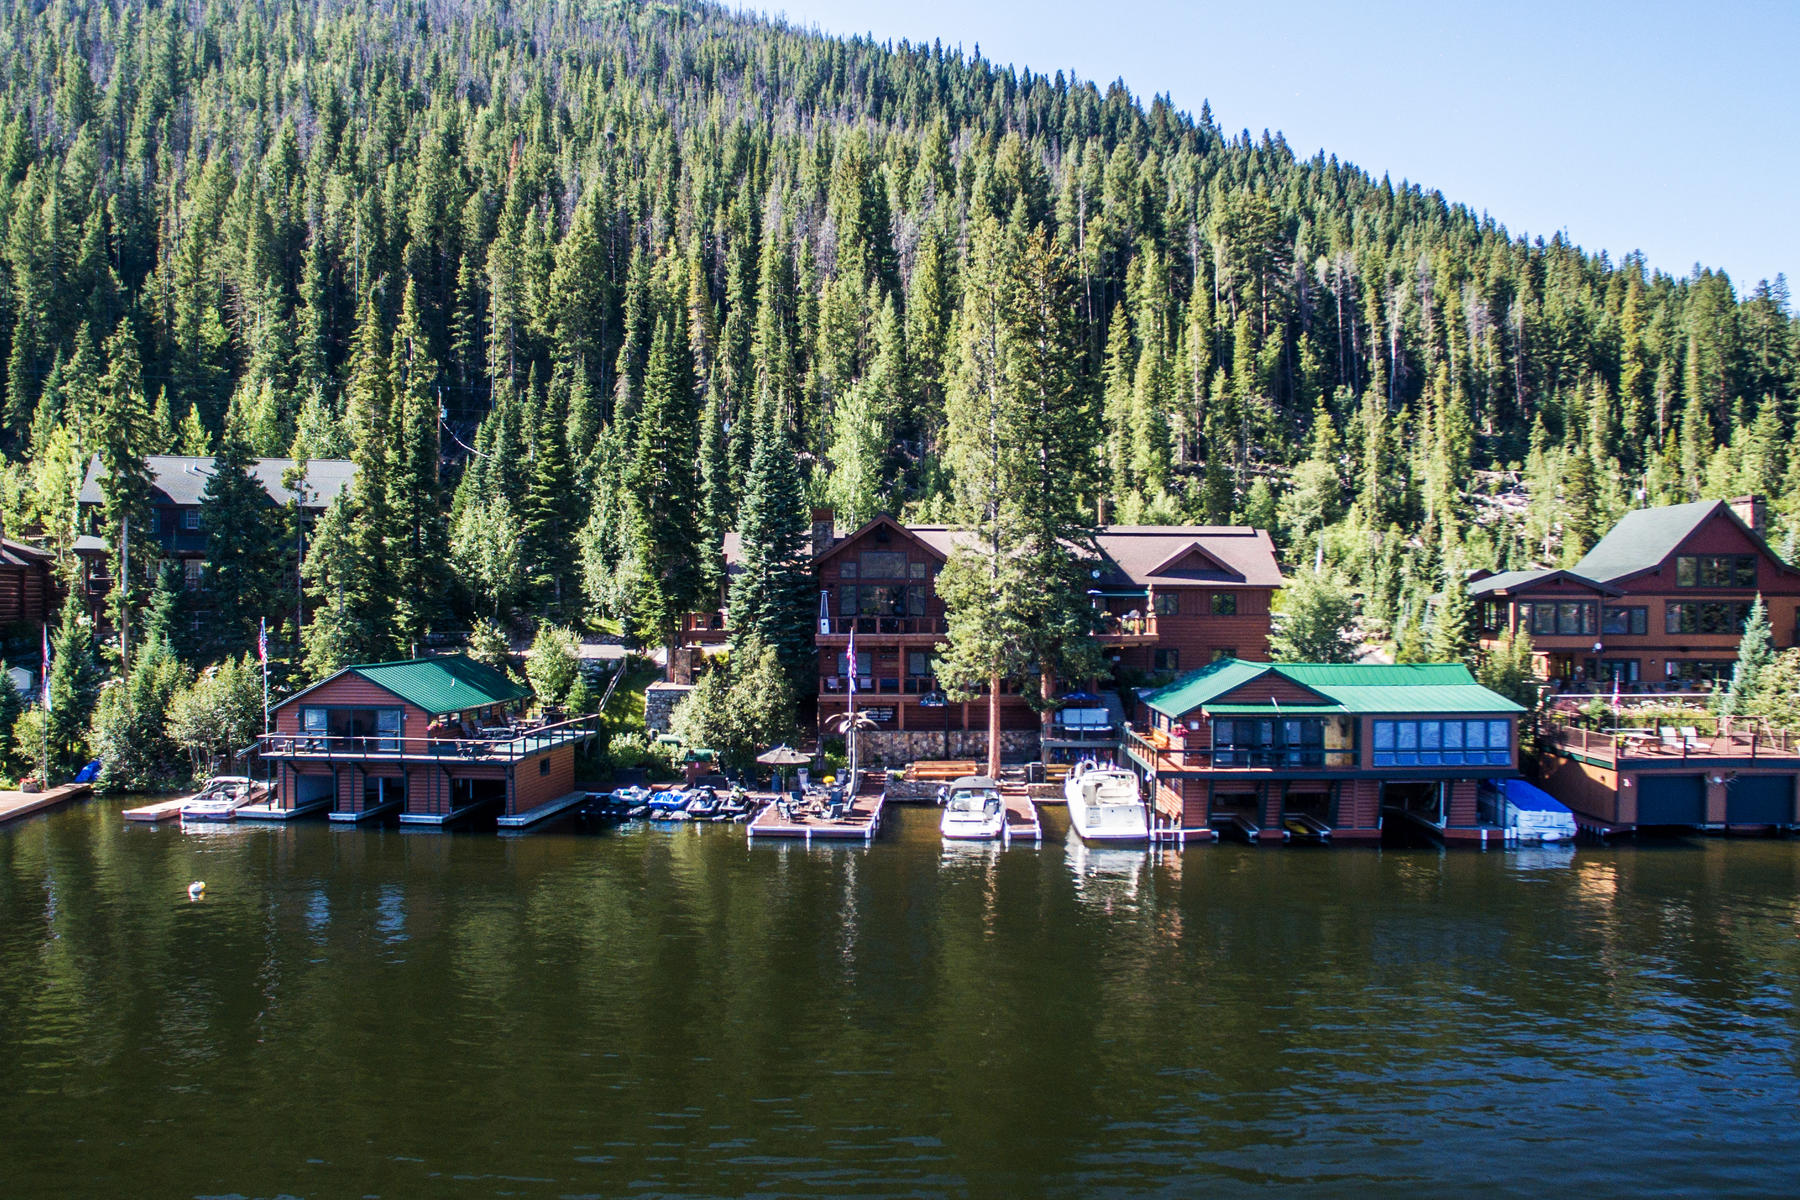 Single Family Home for Active at A Property Unlike Any Other On Grand Lake! 500-504 and 514 CR 697 (Jericho Road) Grand Lake, Colorado 80447 United States